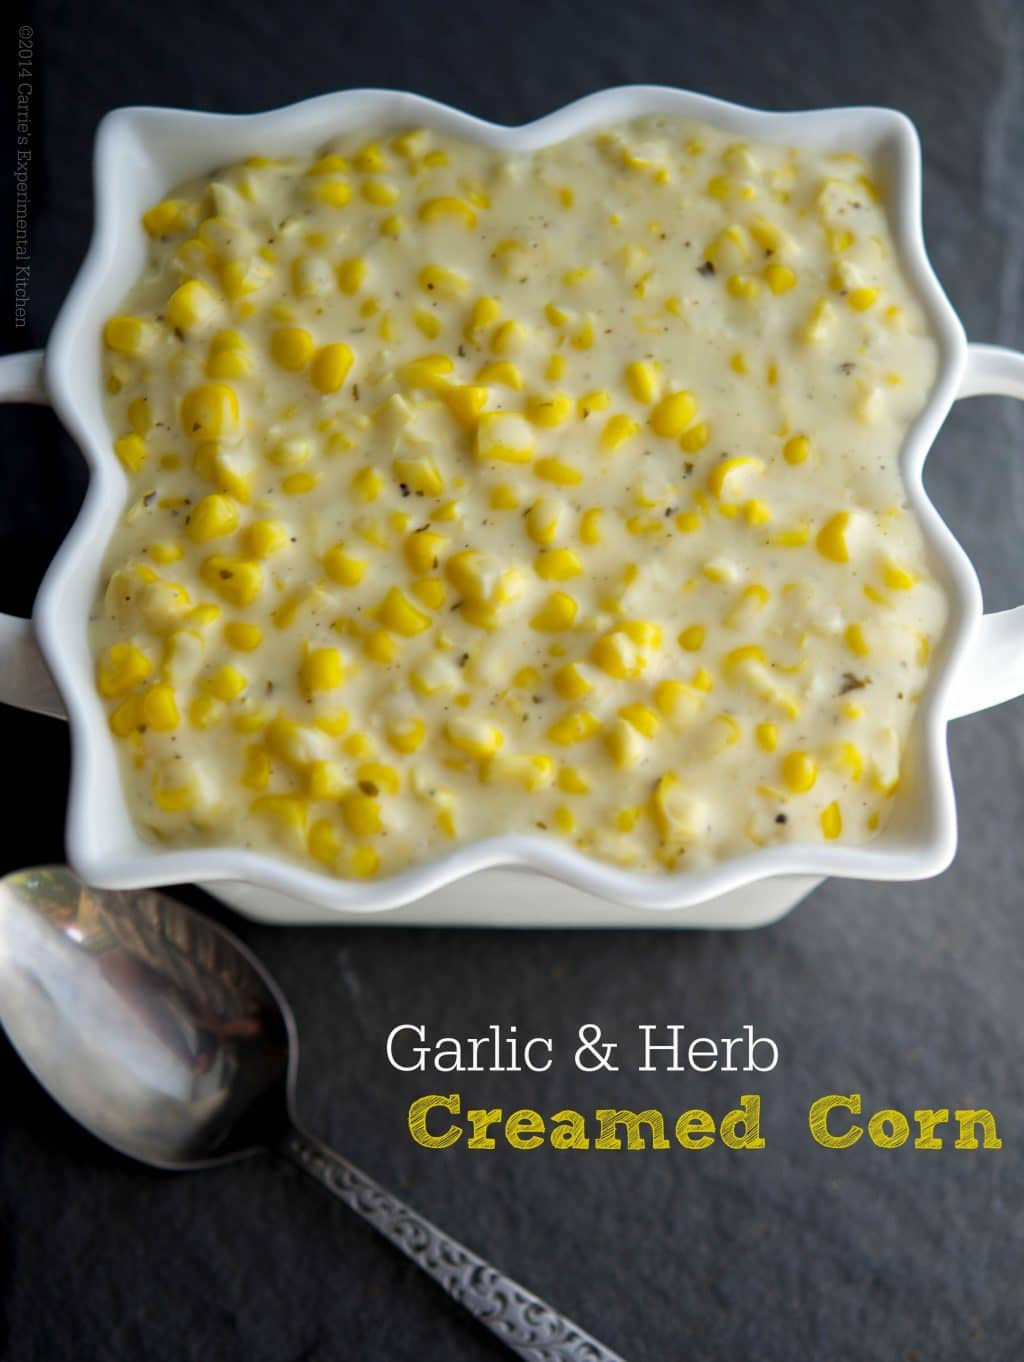 Garlic & Herb Creamed Corn made with Alouette cheese and garden fresh corn on the cob.